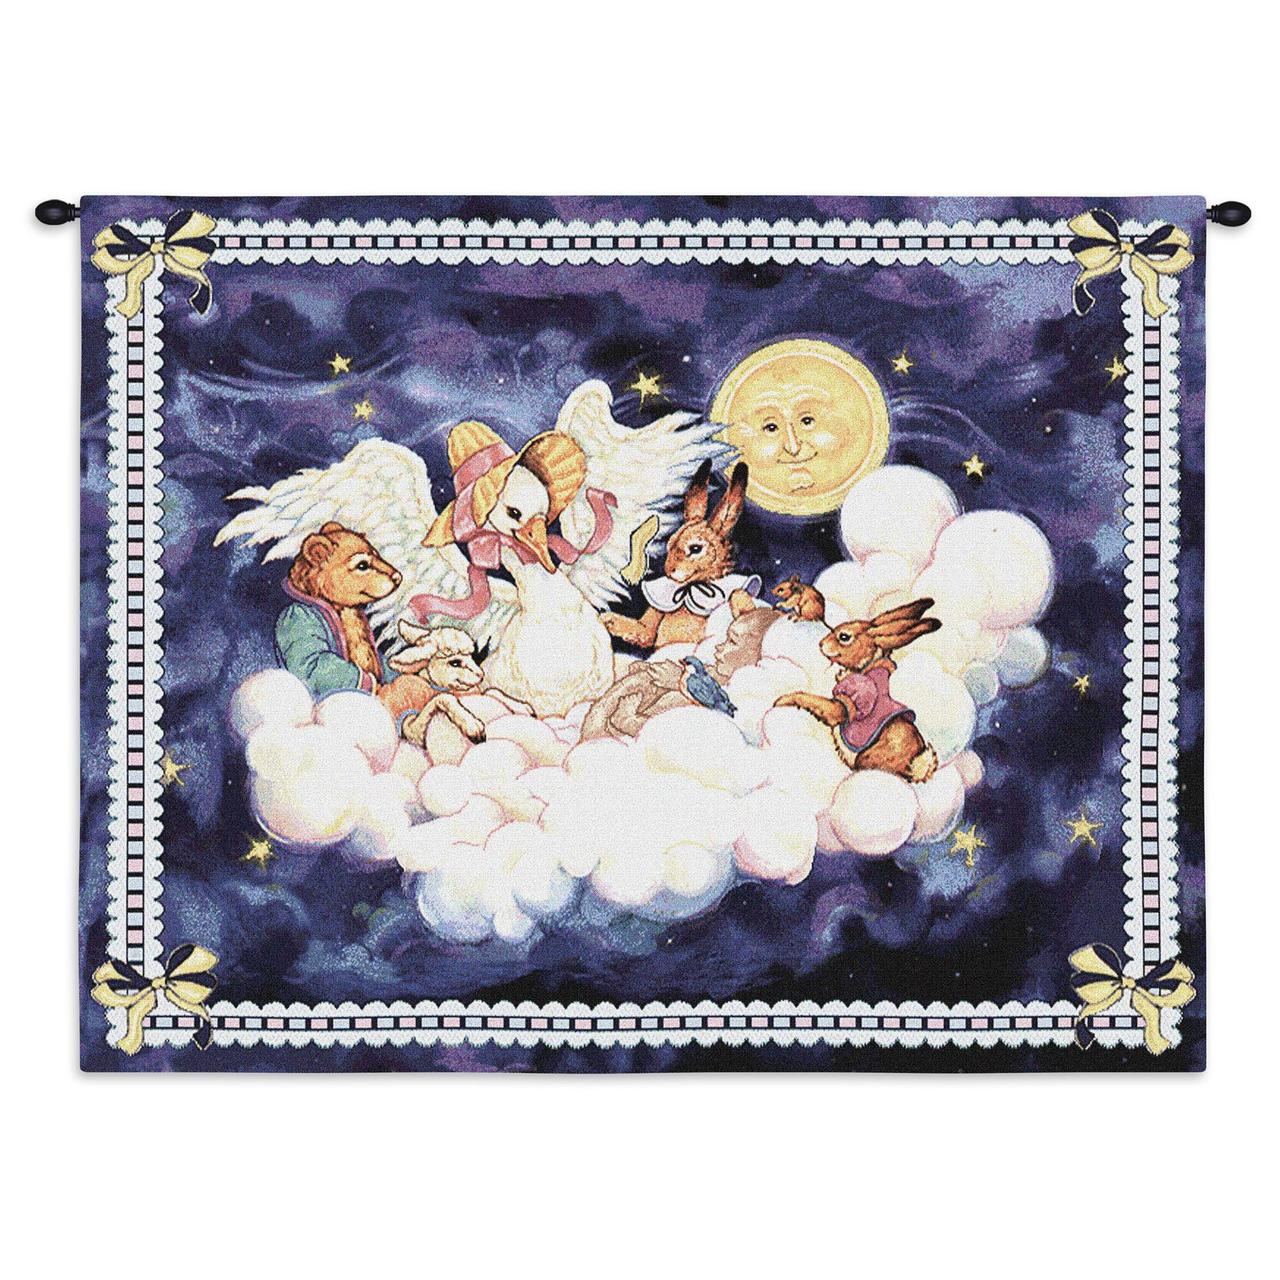 Mother Goose By Donna Race Woven Tapestry Wall Art Hanging Cotton USA Size 33x26